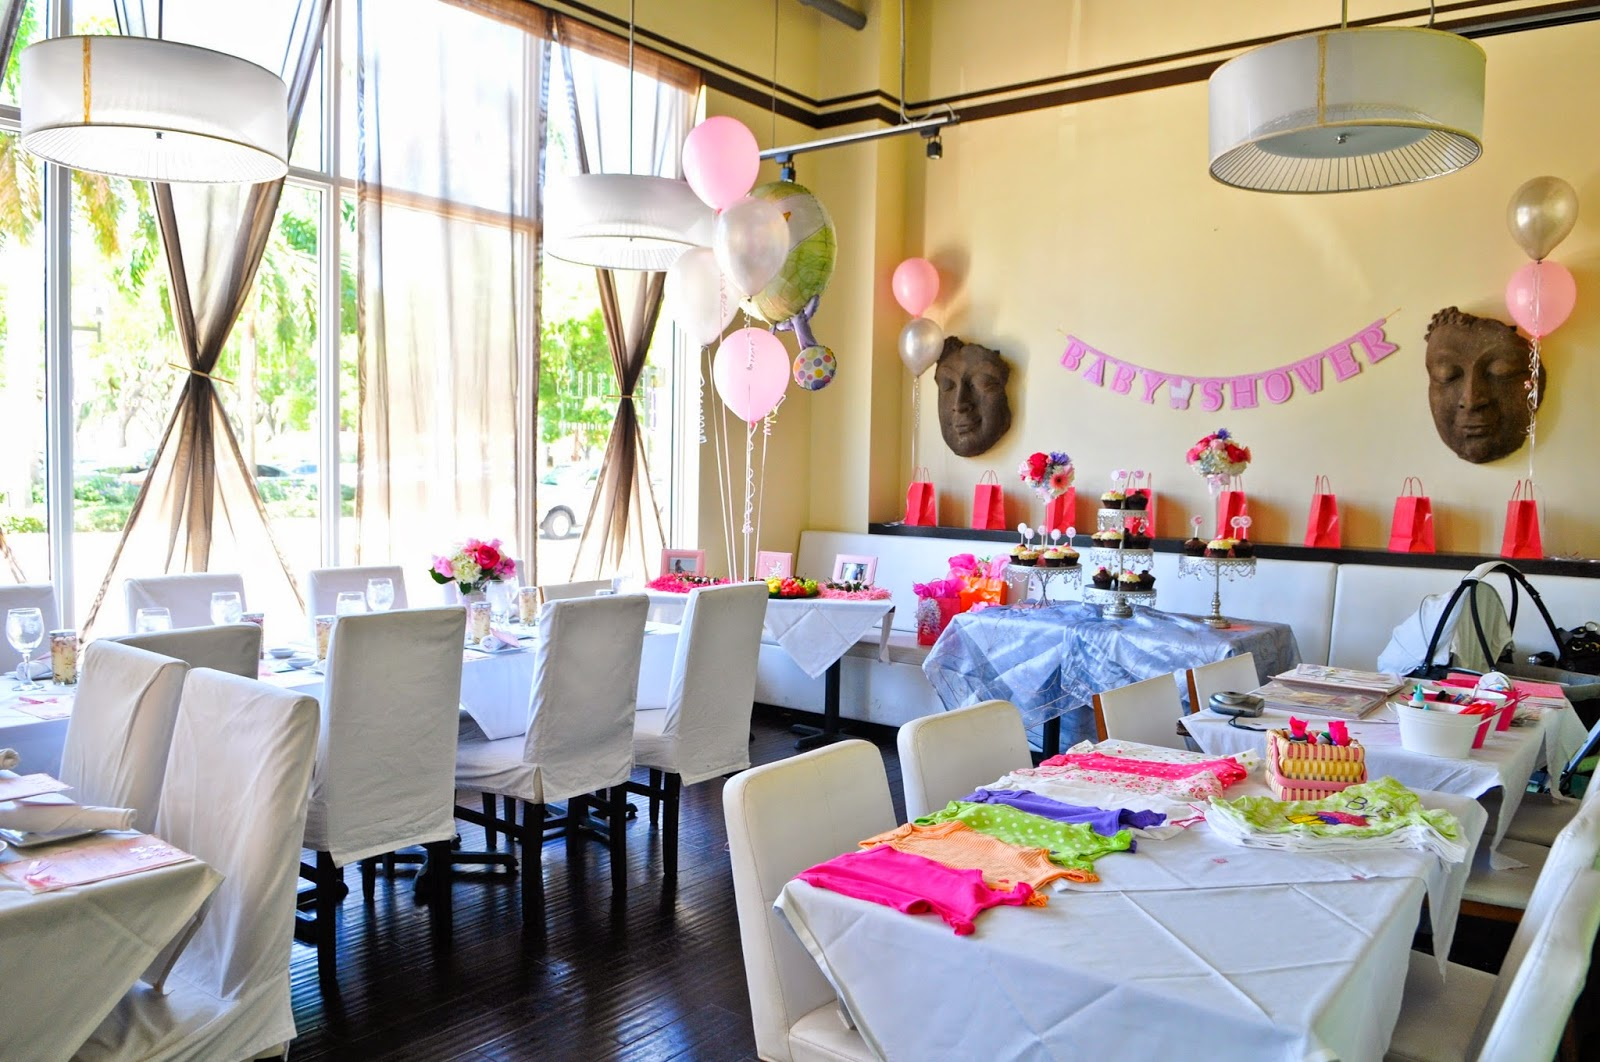 Baby Shower Venue Ideas Singapore ~ Married working mothers reasons why i dislike baby showers